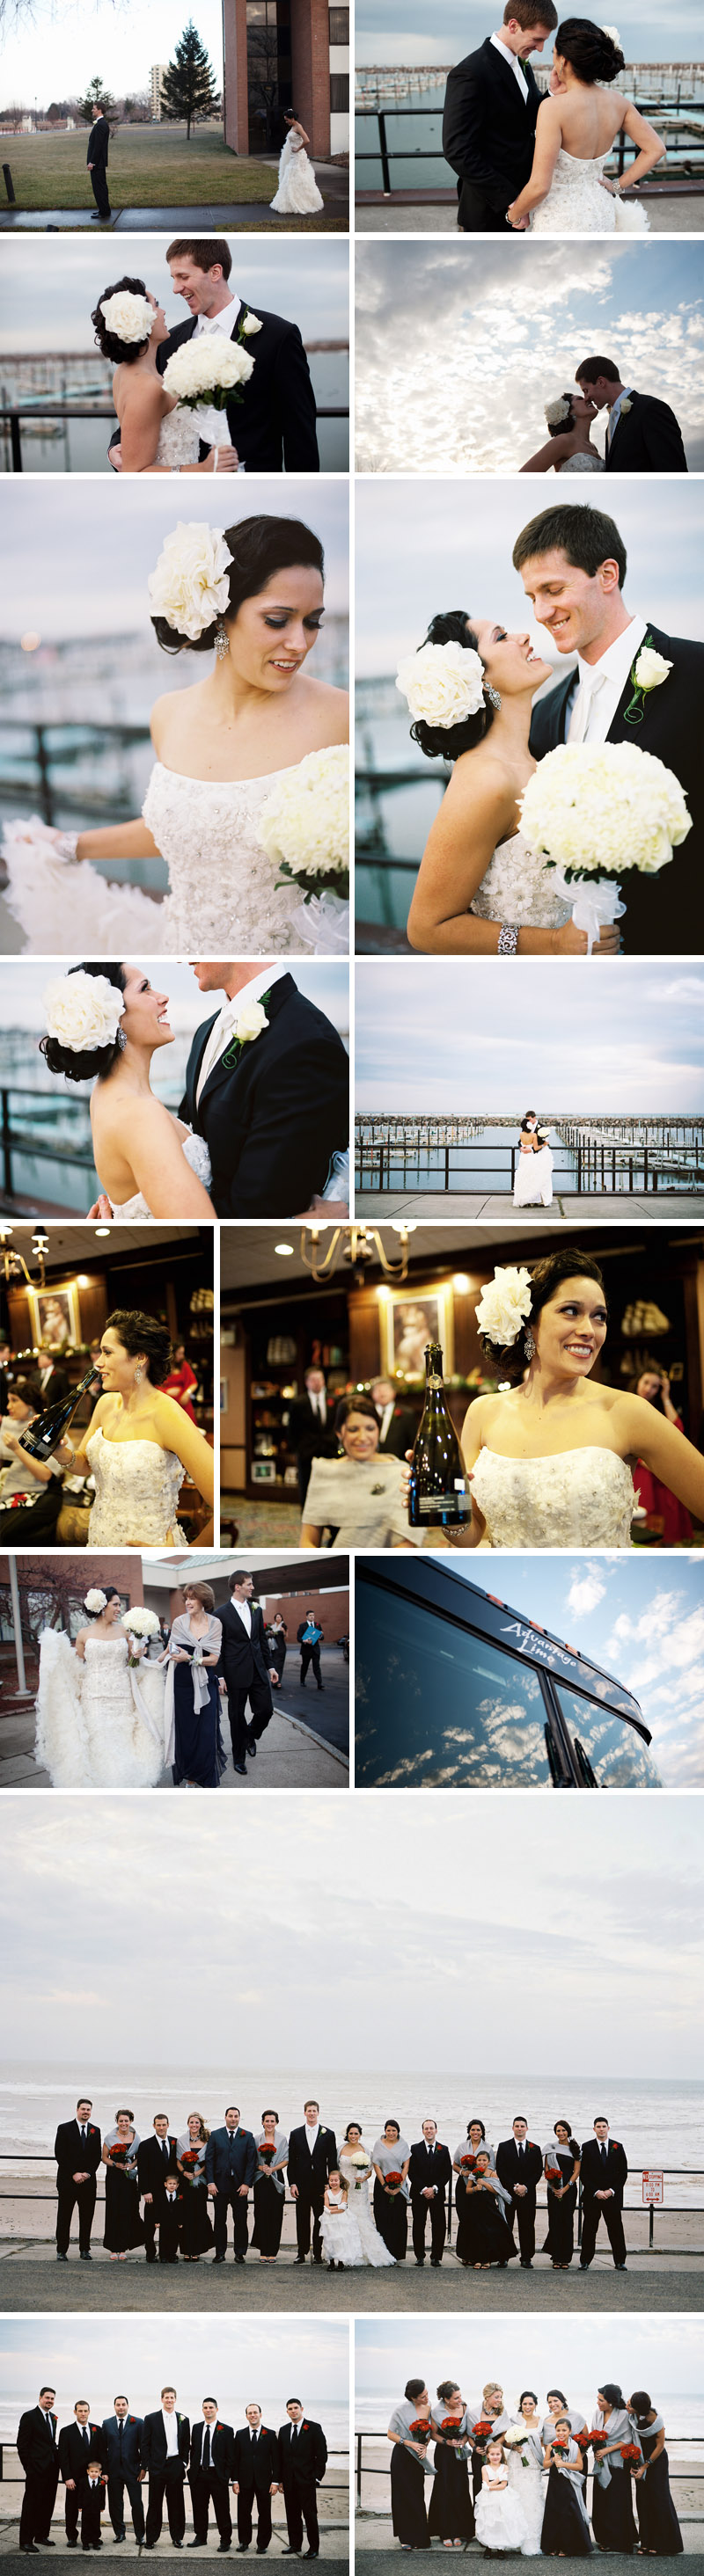 dunkirk new york wedding photographed by michael ash imagery